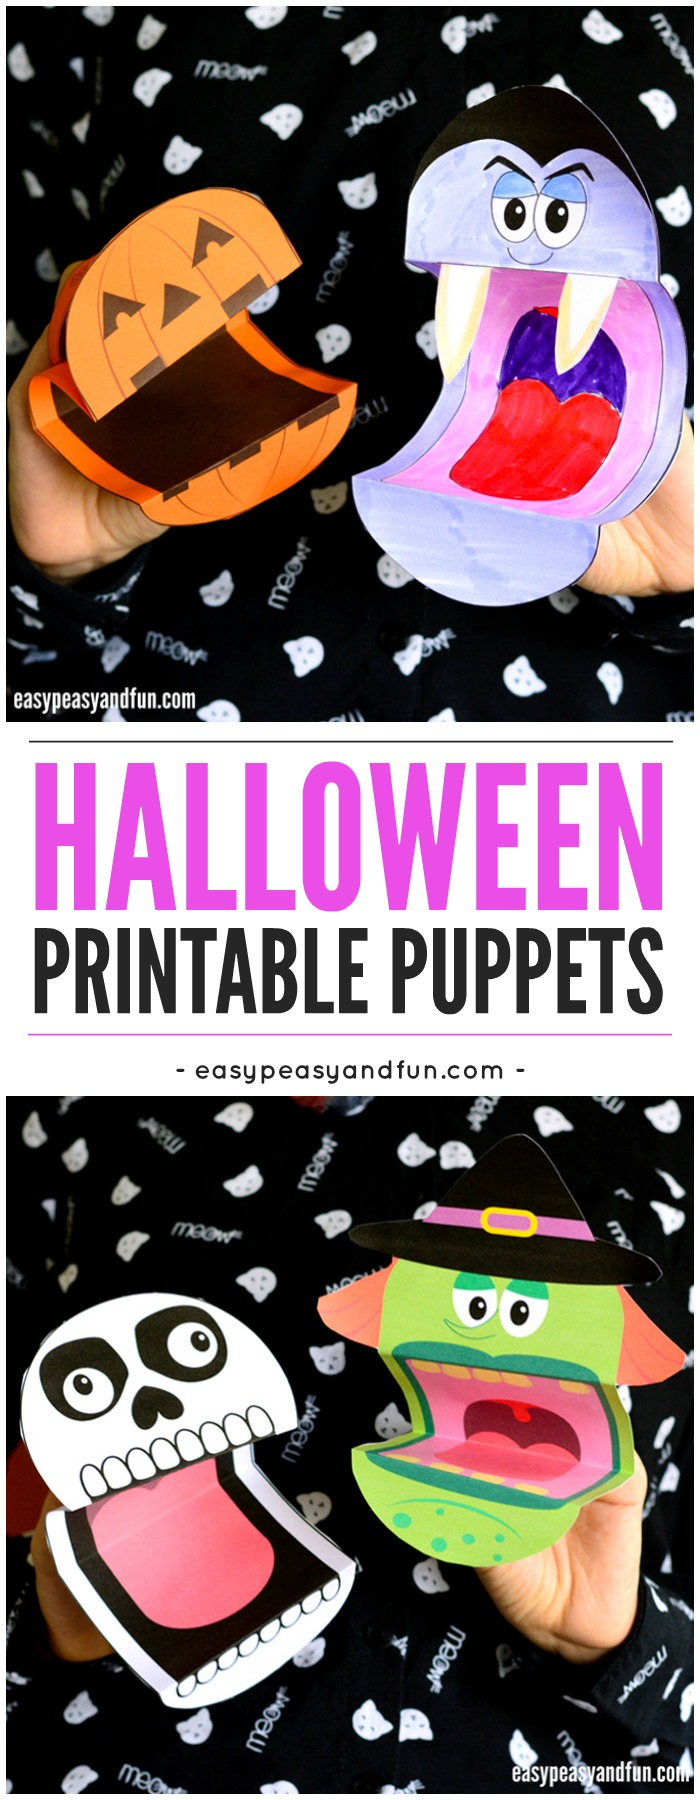 Printable Halloween Puppets. A fun printable Halloween activity for kids to make at home or in the classroom.